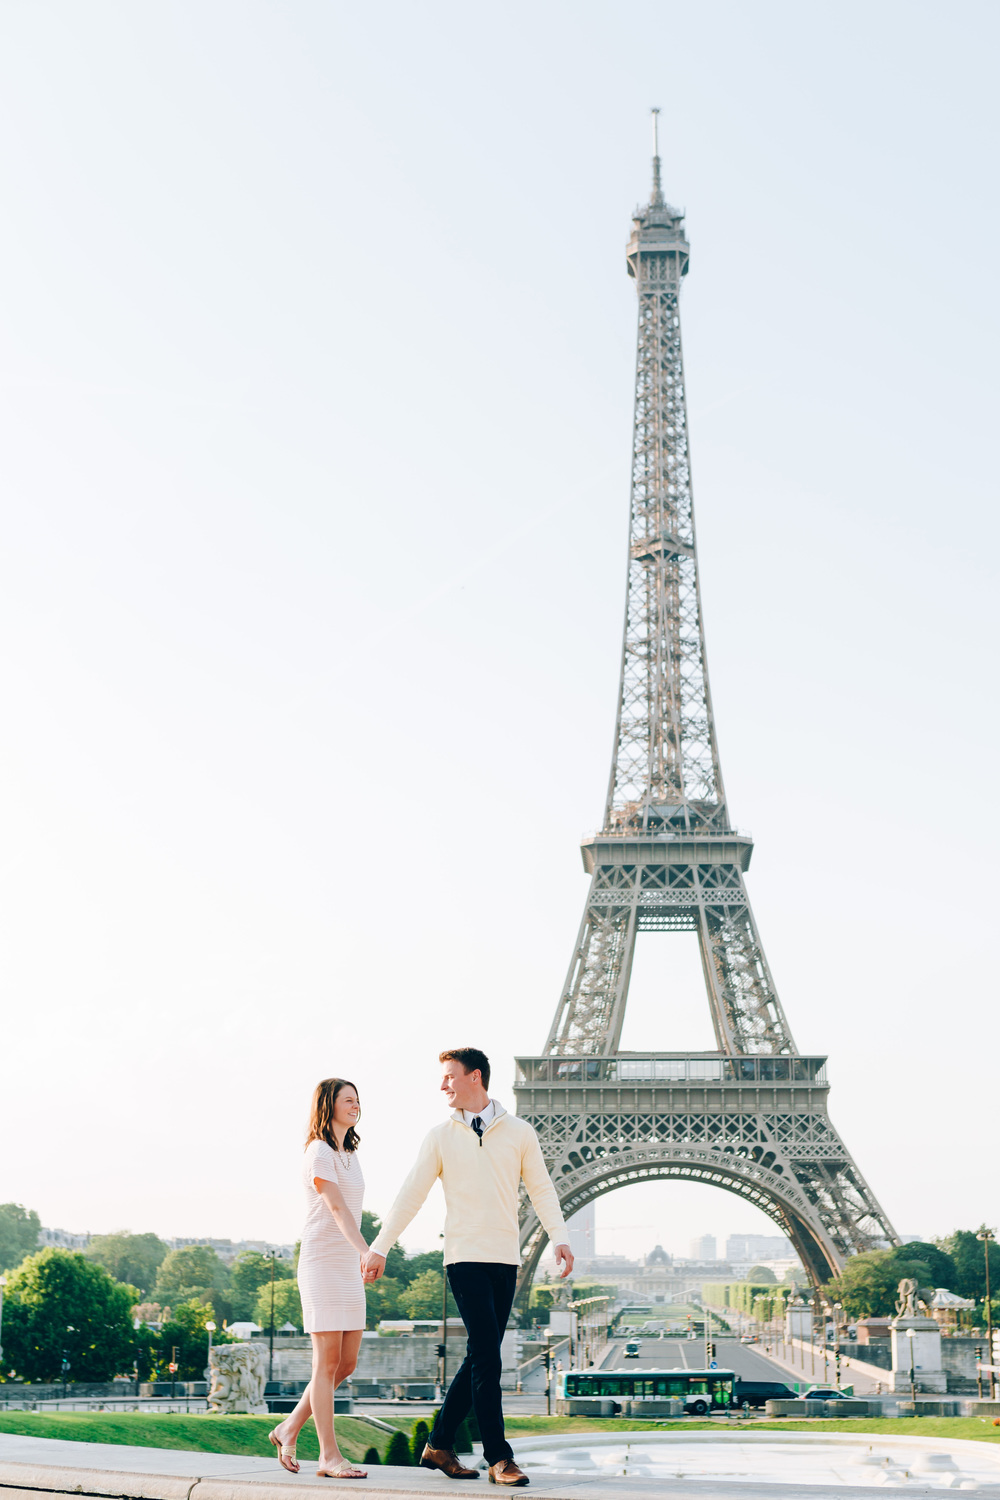 Paris-Photographer-Eiffel-Tower-Propose-in-Paris-Iheartparisfr.jpg